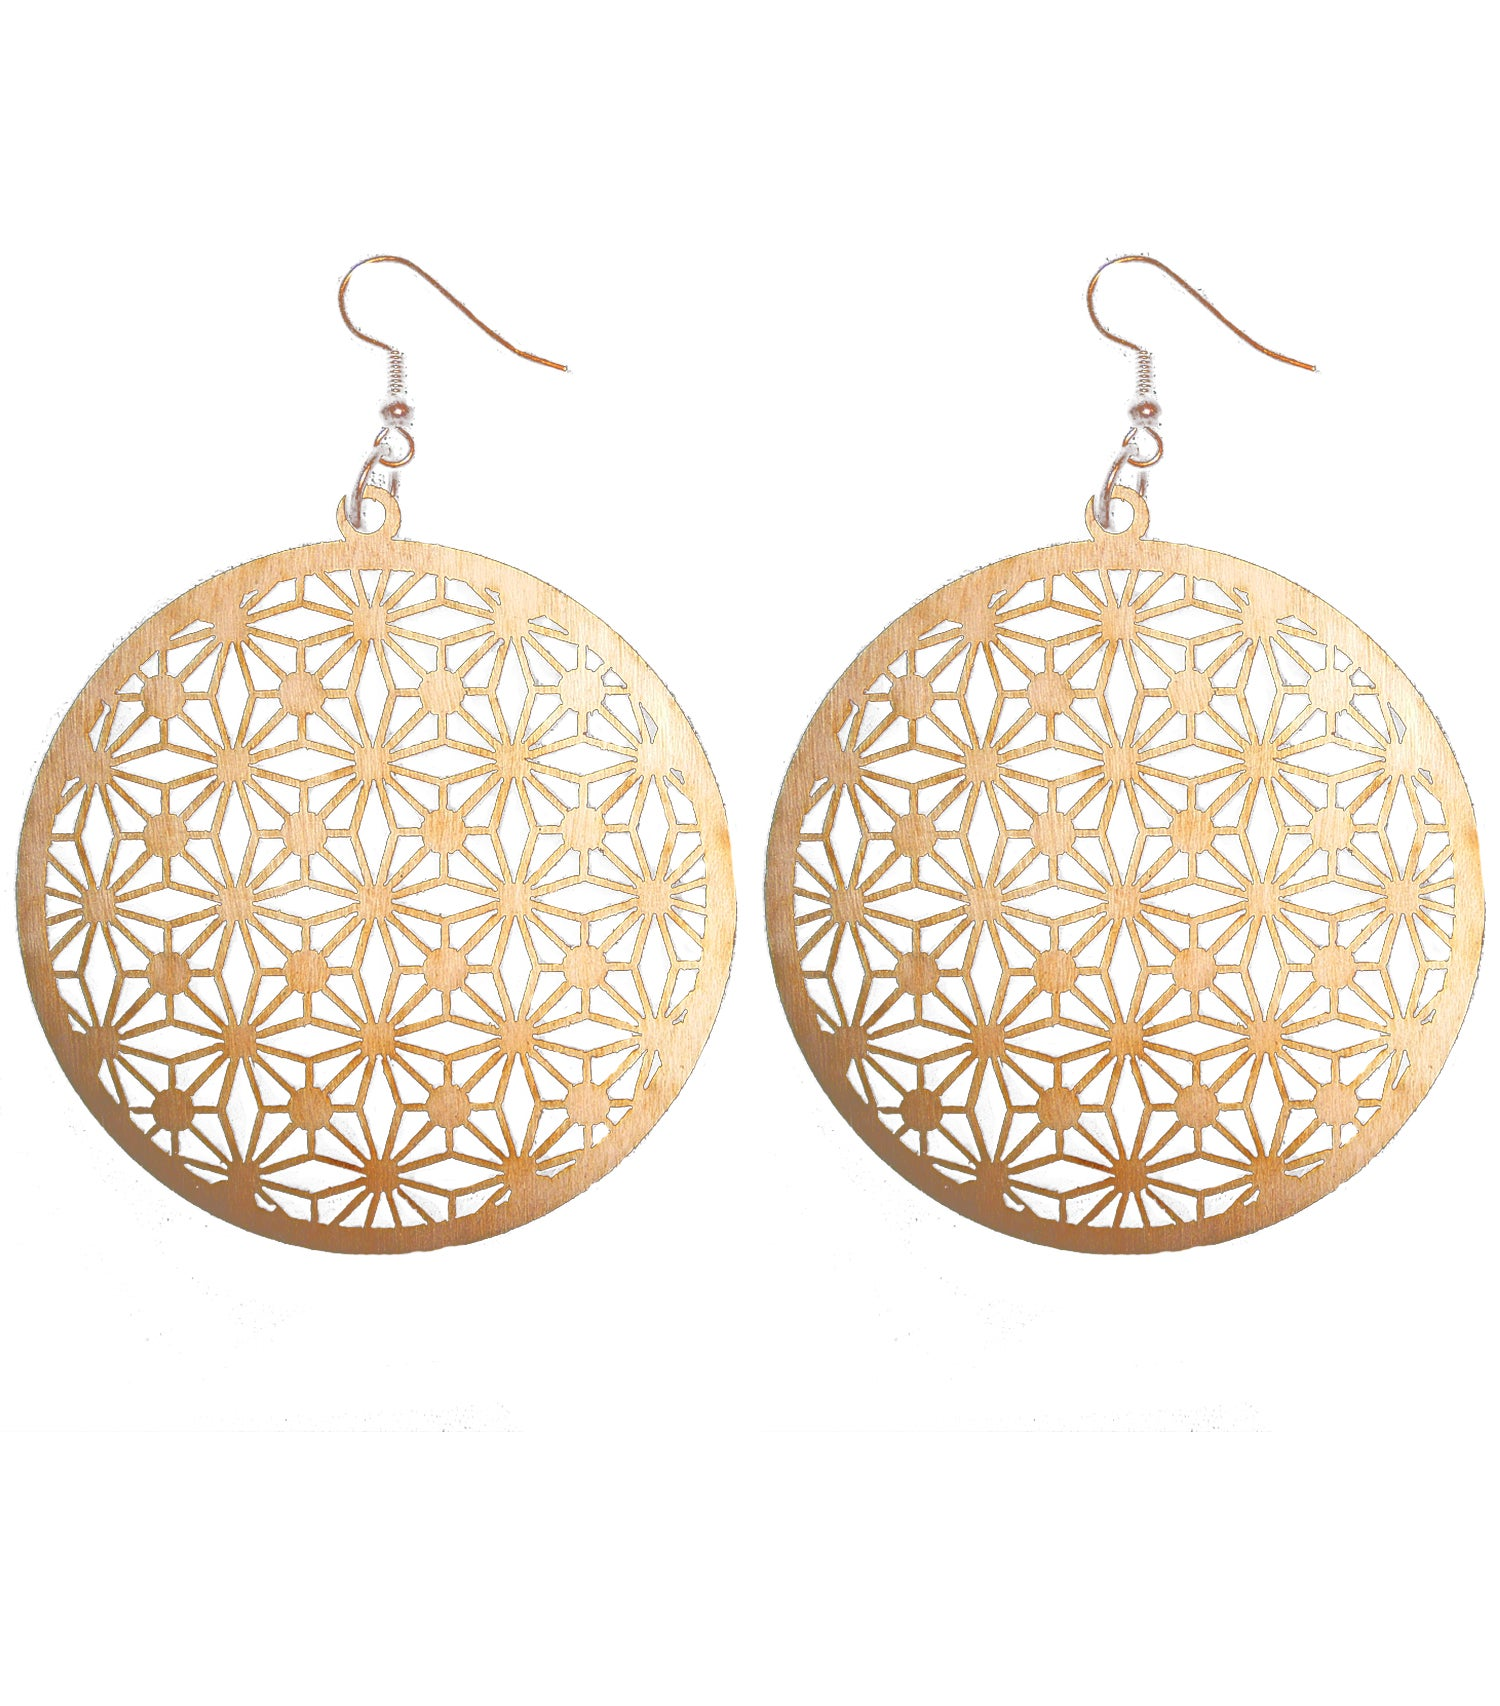 Image of CHERRY WOOD LASER CUT EARRINGS WOOD AND COPPER